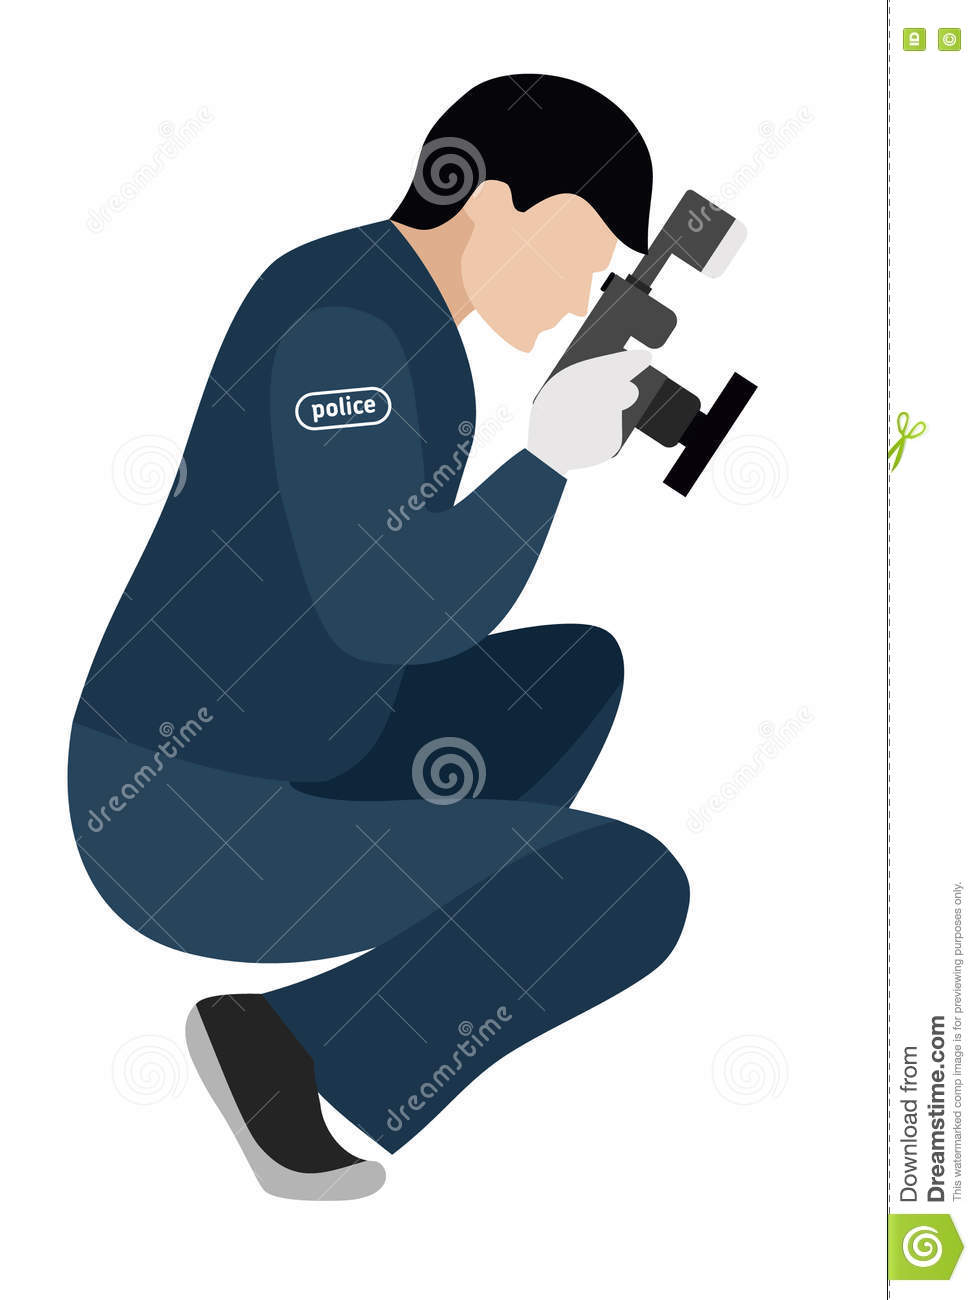 Forensic Scientist Stock Illustrations 331 Forensic Scientist Stock Illustrations Vectors Clipart Dreamstime